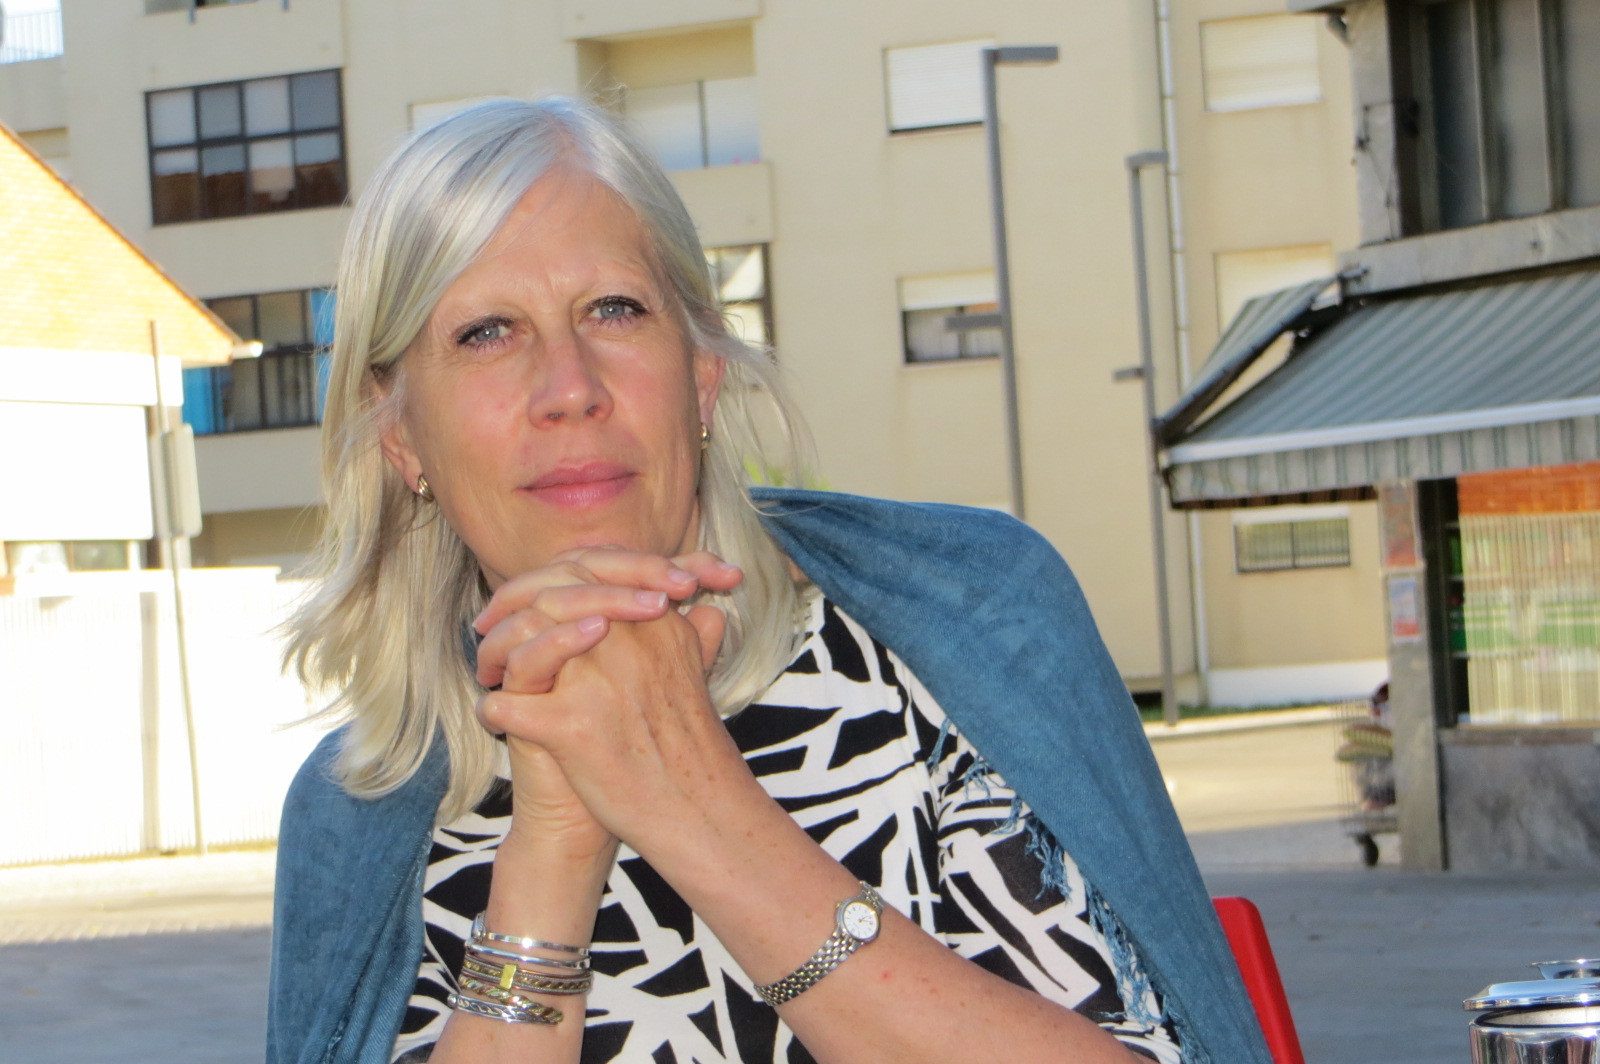 A profile picture of a woman with white hair, wearing a blue cardigan